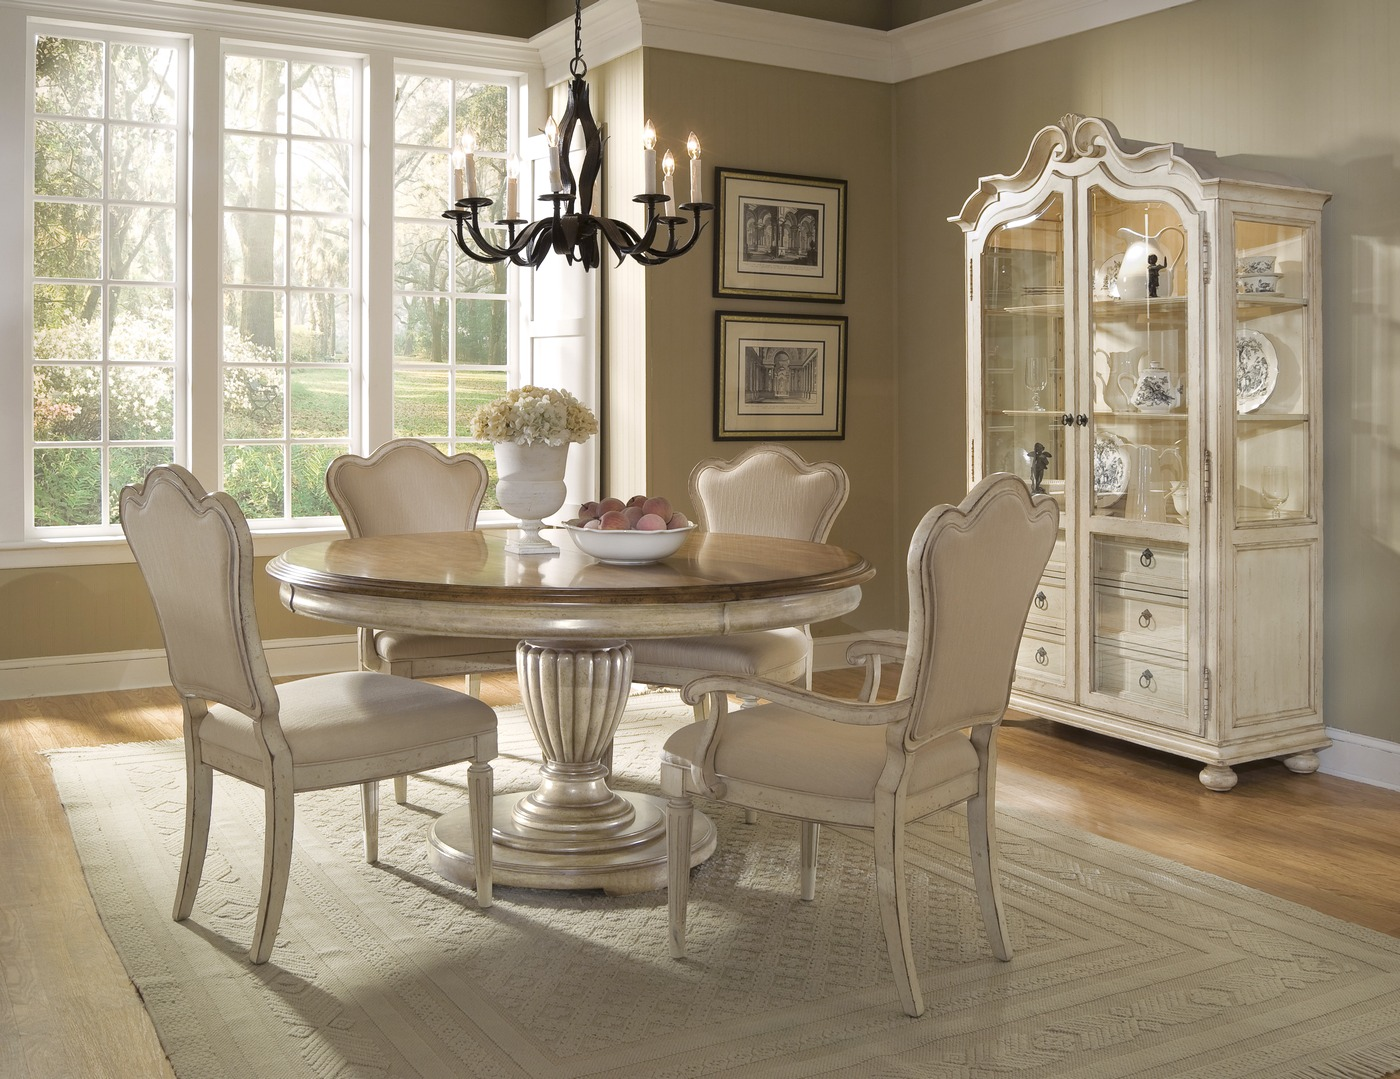 french country dining room set french country table and chairs. Black Bedroom Furniture Sets. Home Design Ideas